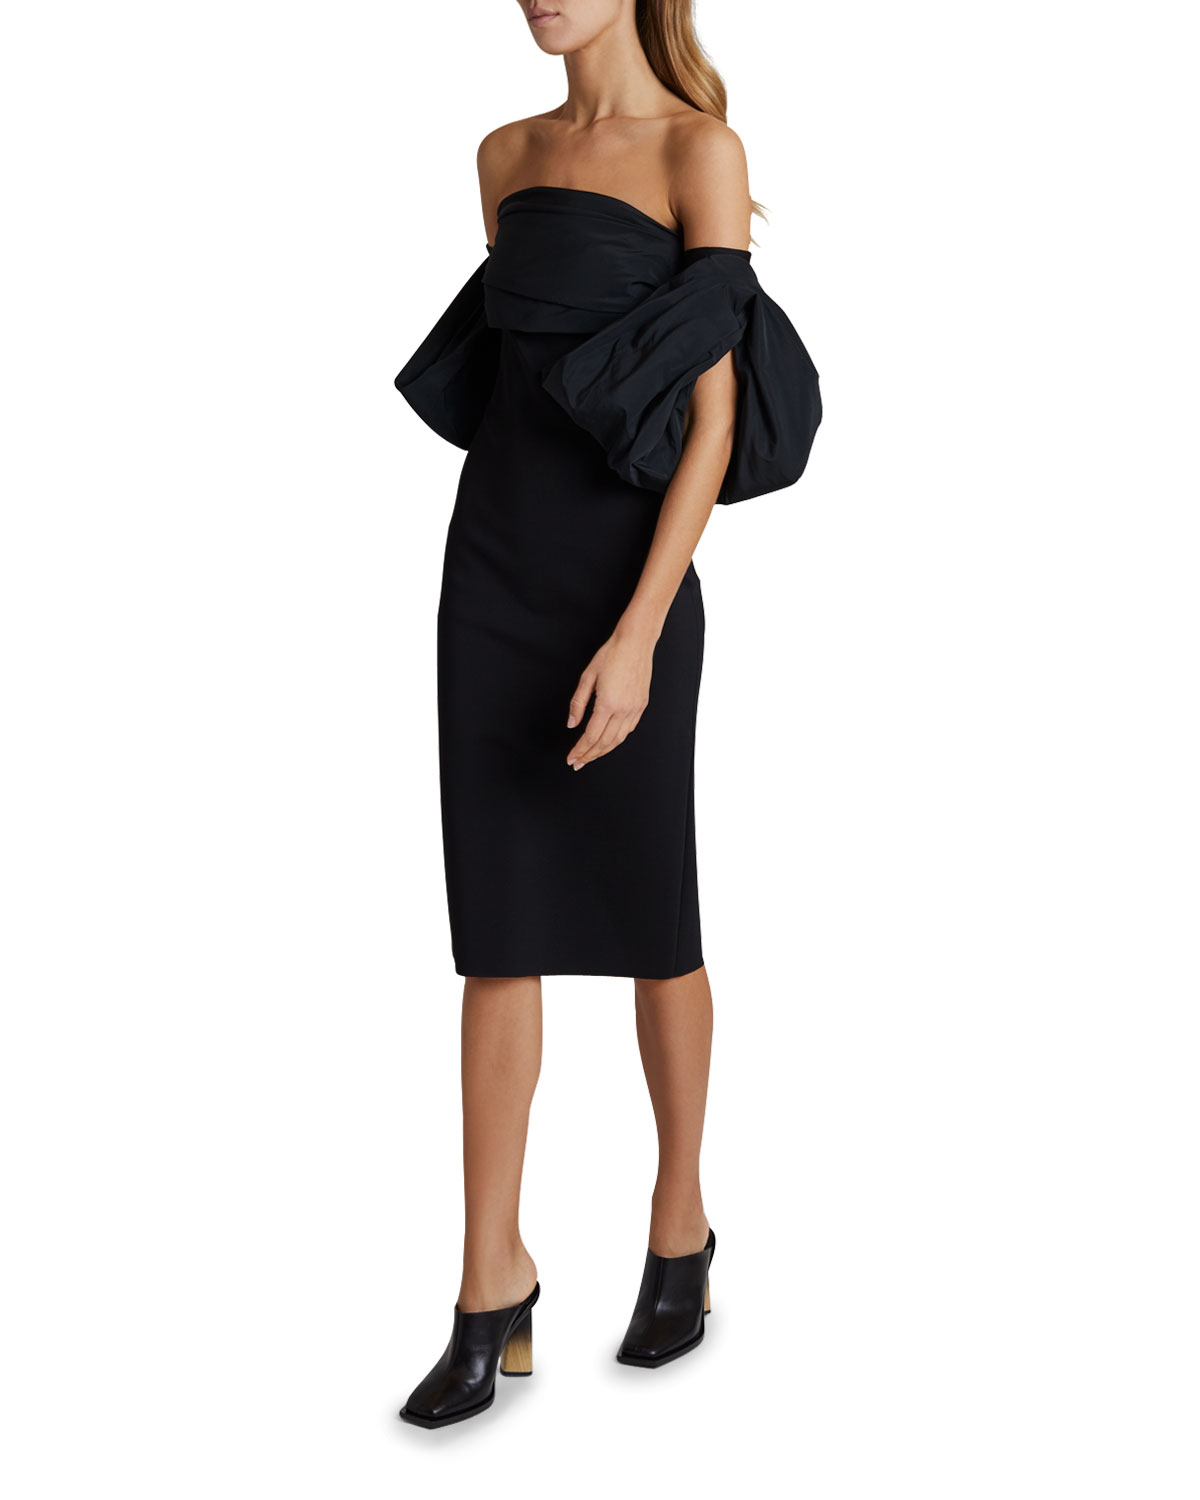 Givenchy Strapless Puff-Sleeve Midi Dress